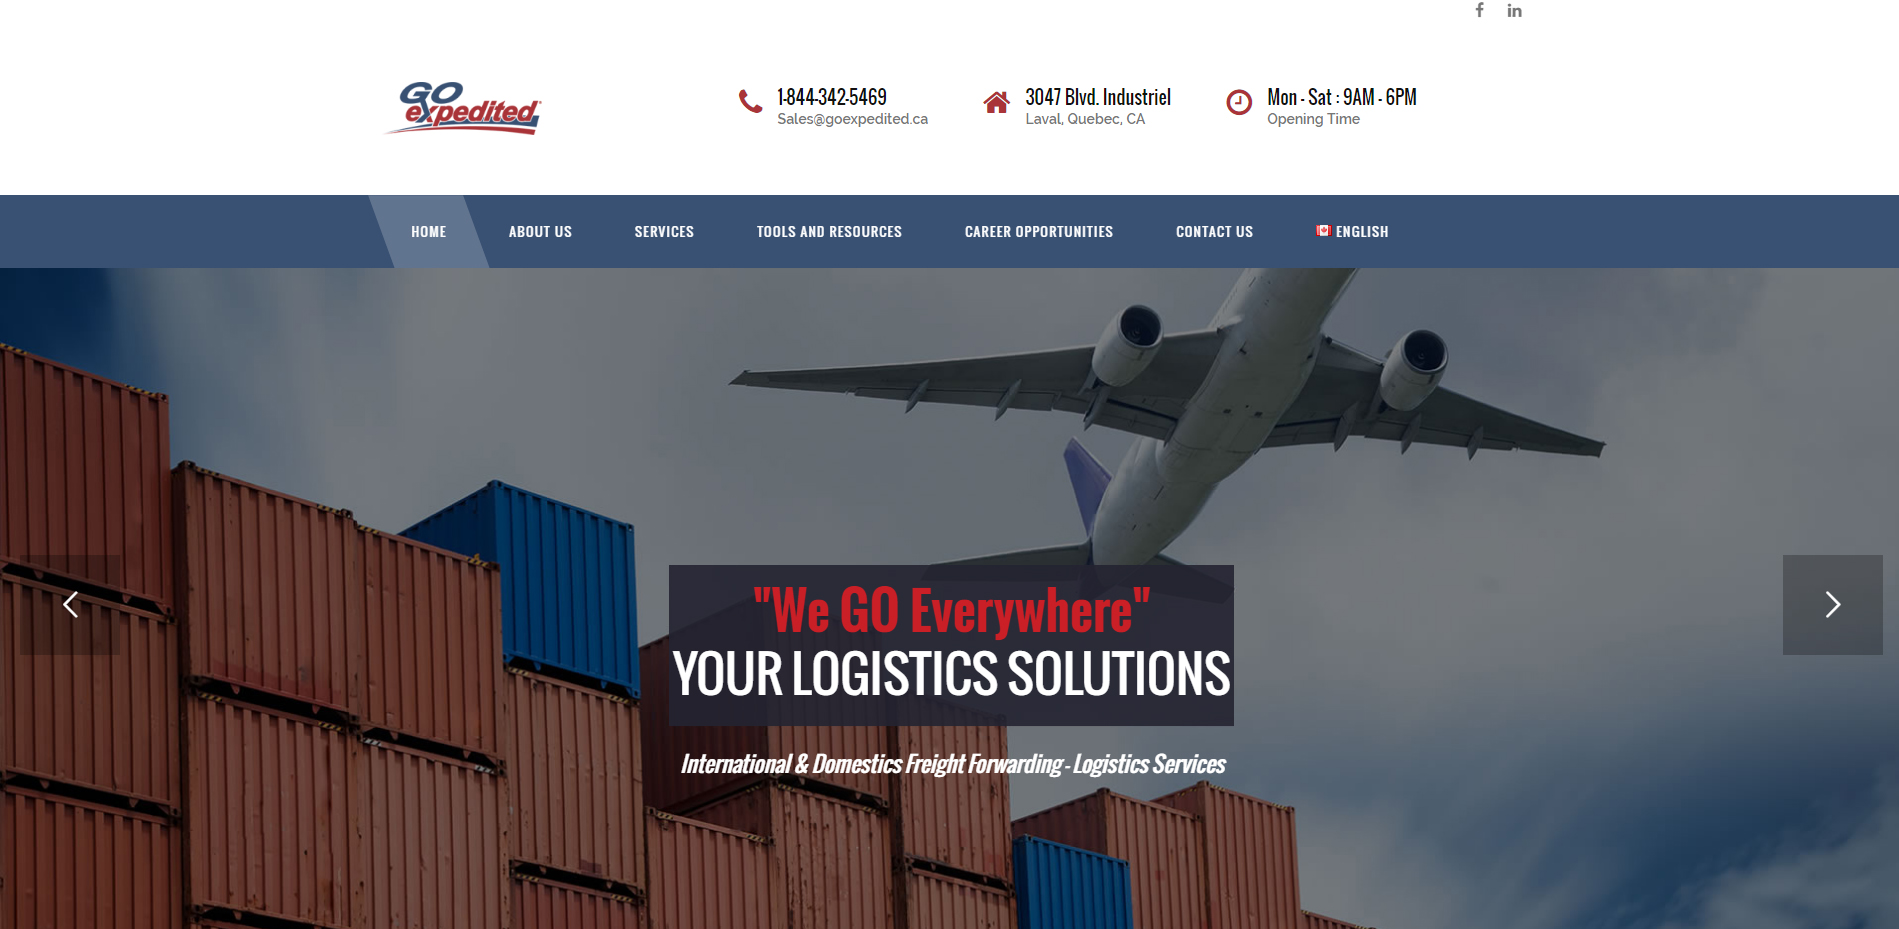 _Go Expedited – International Domestic Freight Forwarding Services